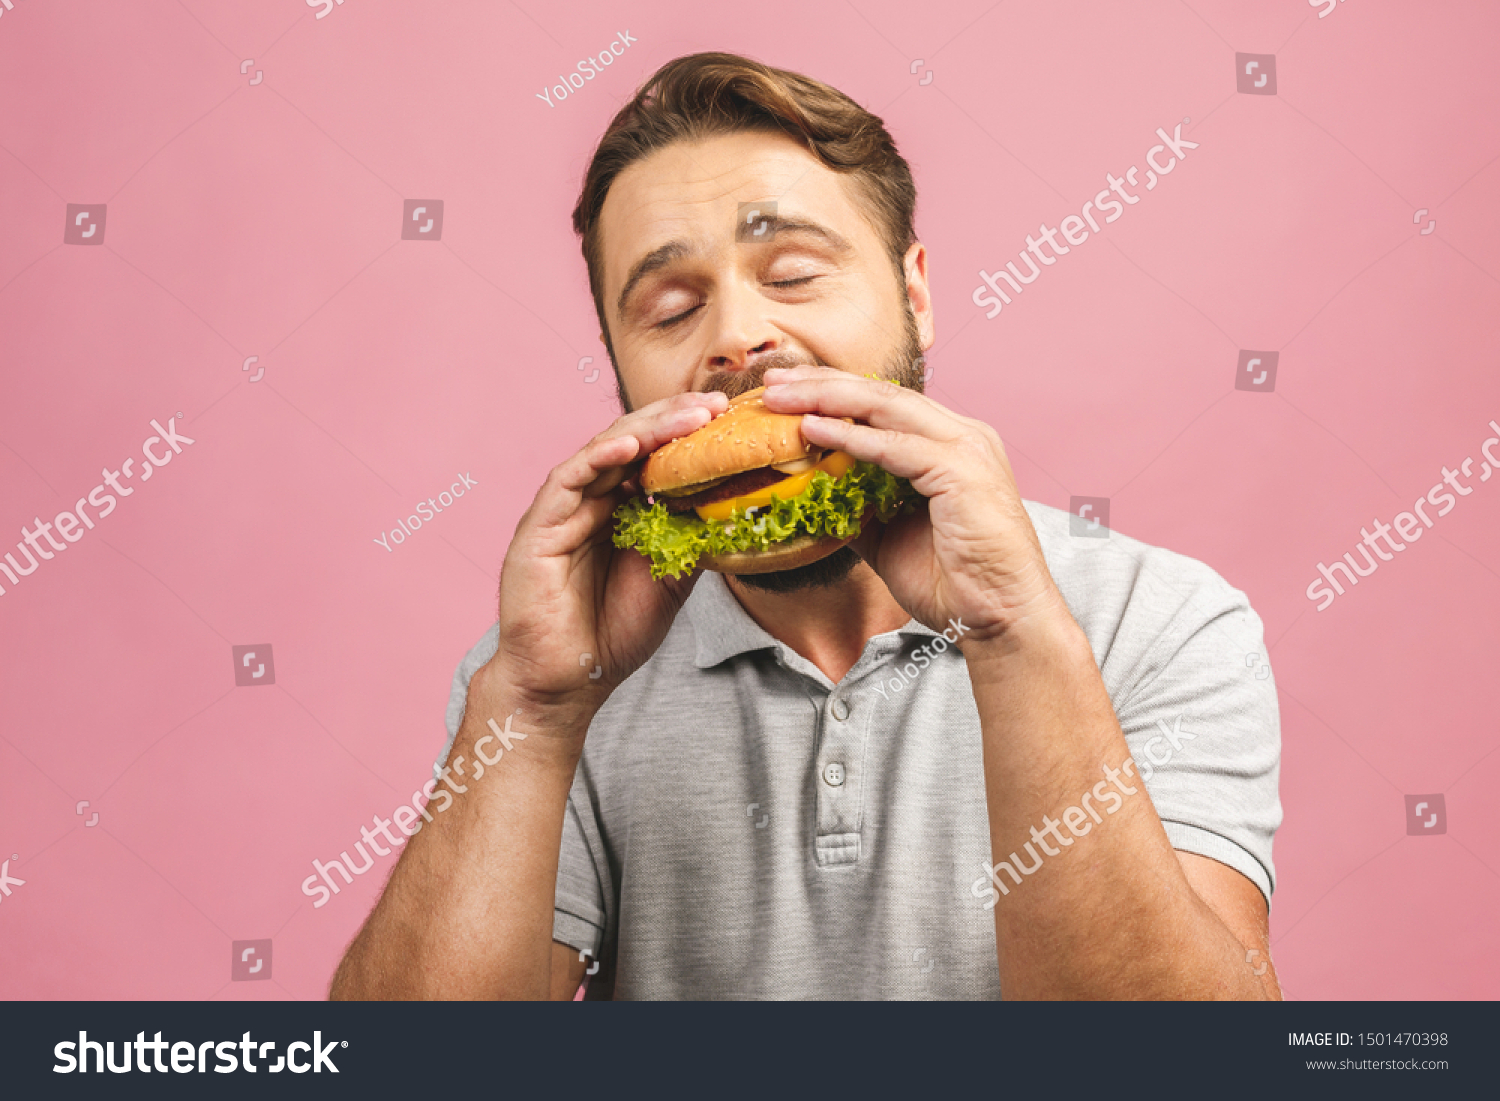 Young man holding a piece of hamburger. Bearded gyu eats fast food. Burger is not helpful food. Very hungry guy. Diet concept. Isolated over pink background. #1501470398